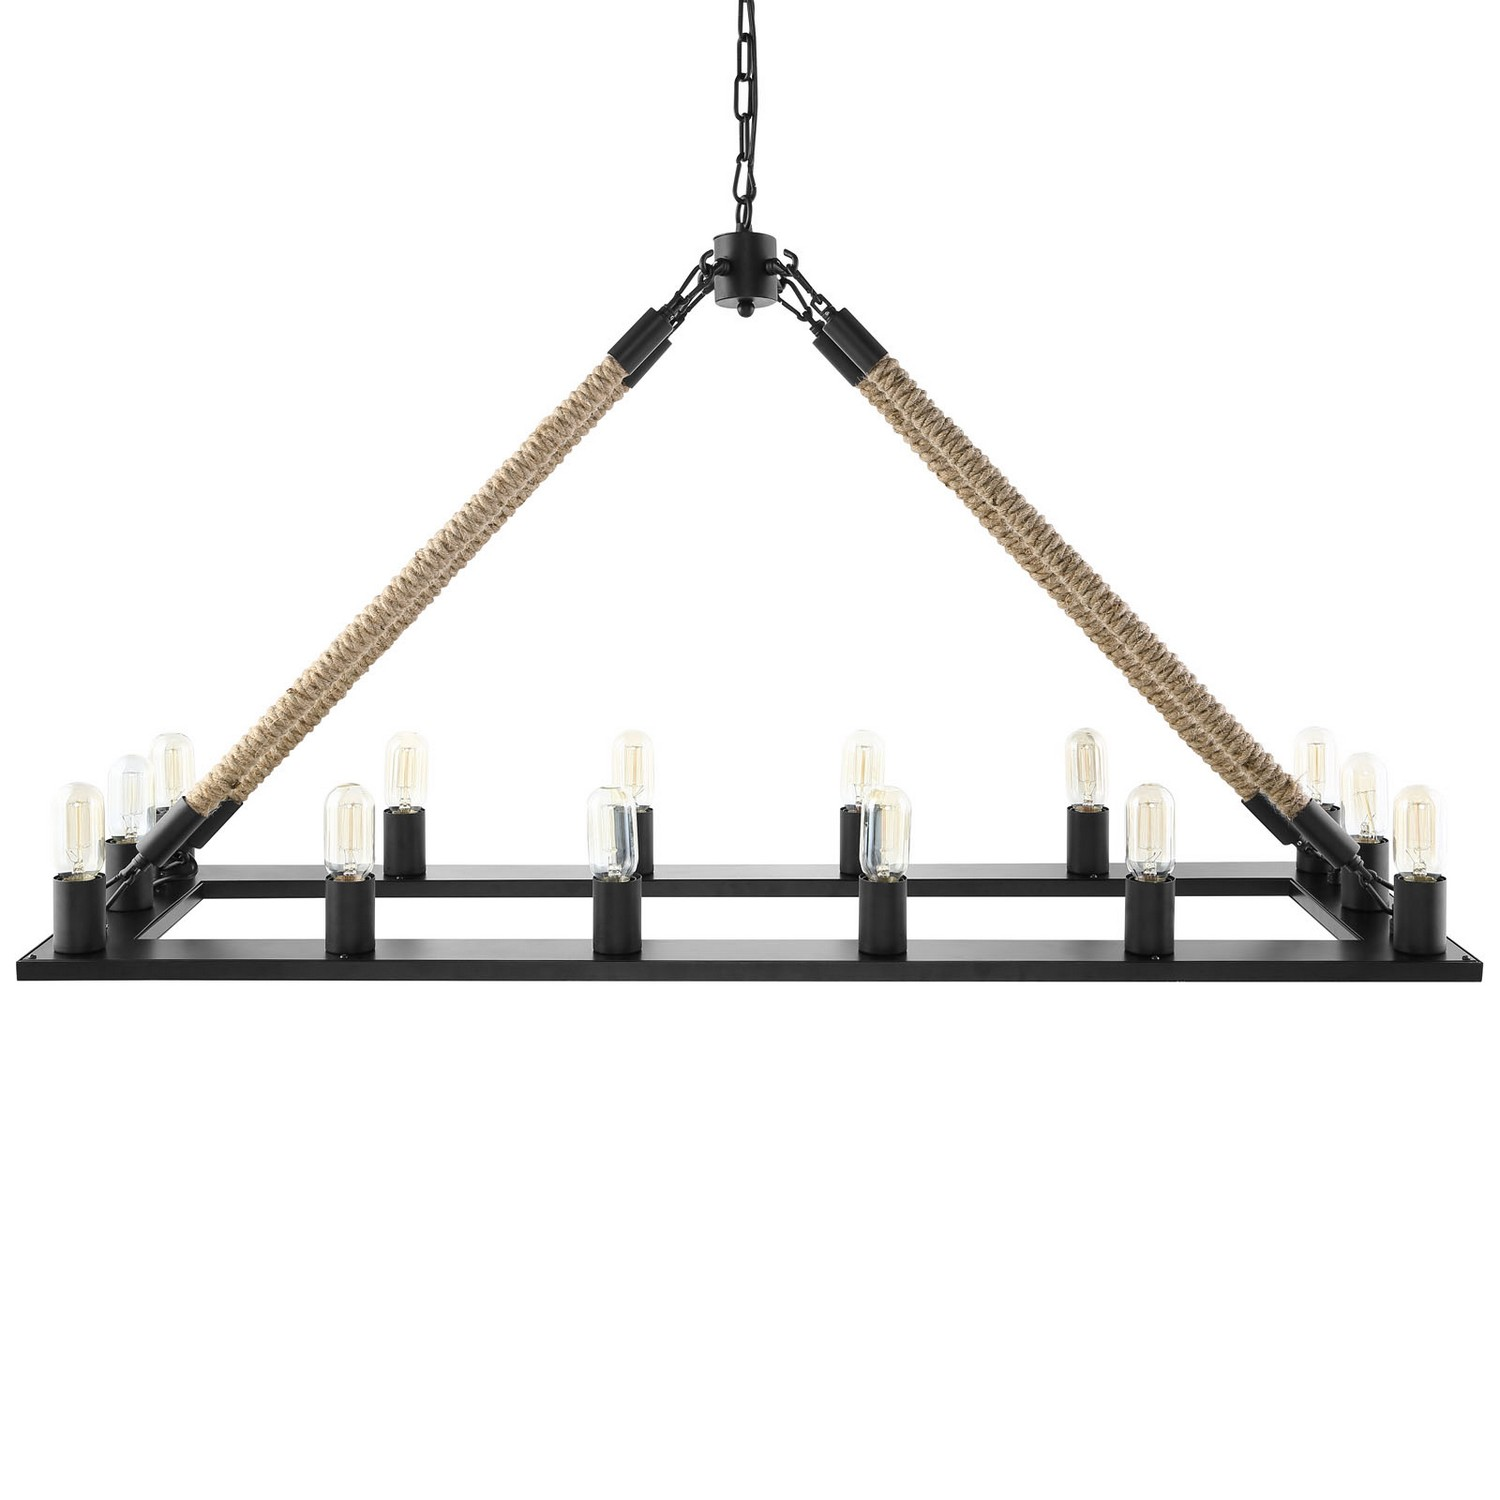 Modway Bridge Chandelier - Black